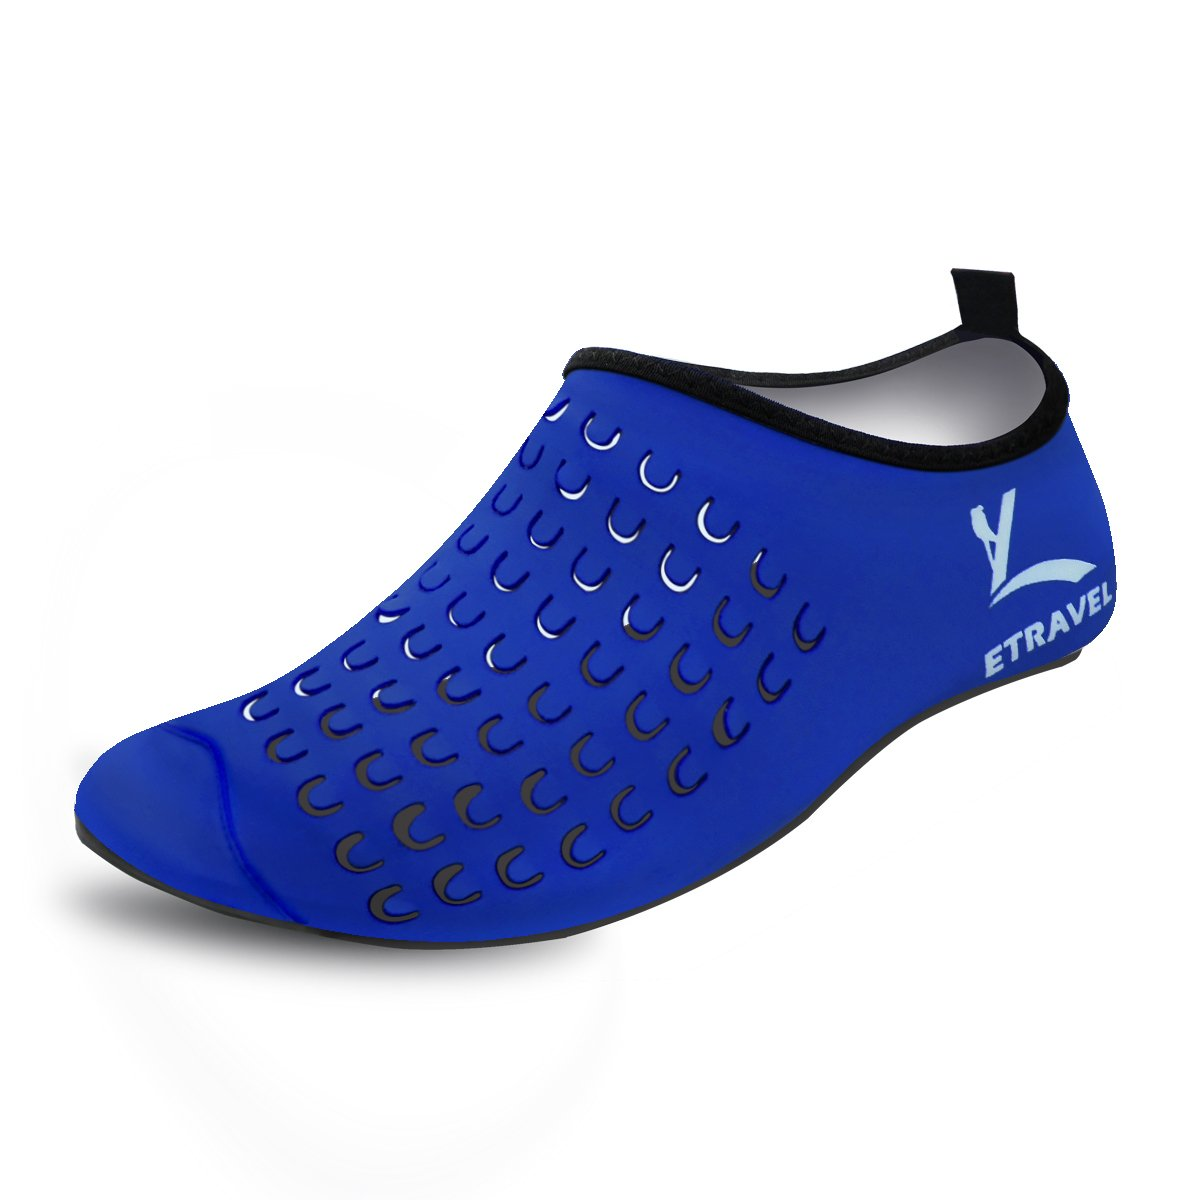 Cevinee Slip-on Water Shoes, Anti-slip Athletic Aqua Socks, for Outdoor Pool Beach Swim Exercise Workout - Blue Dot XXXL